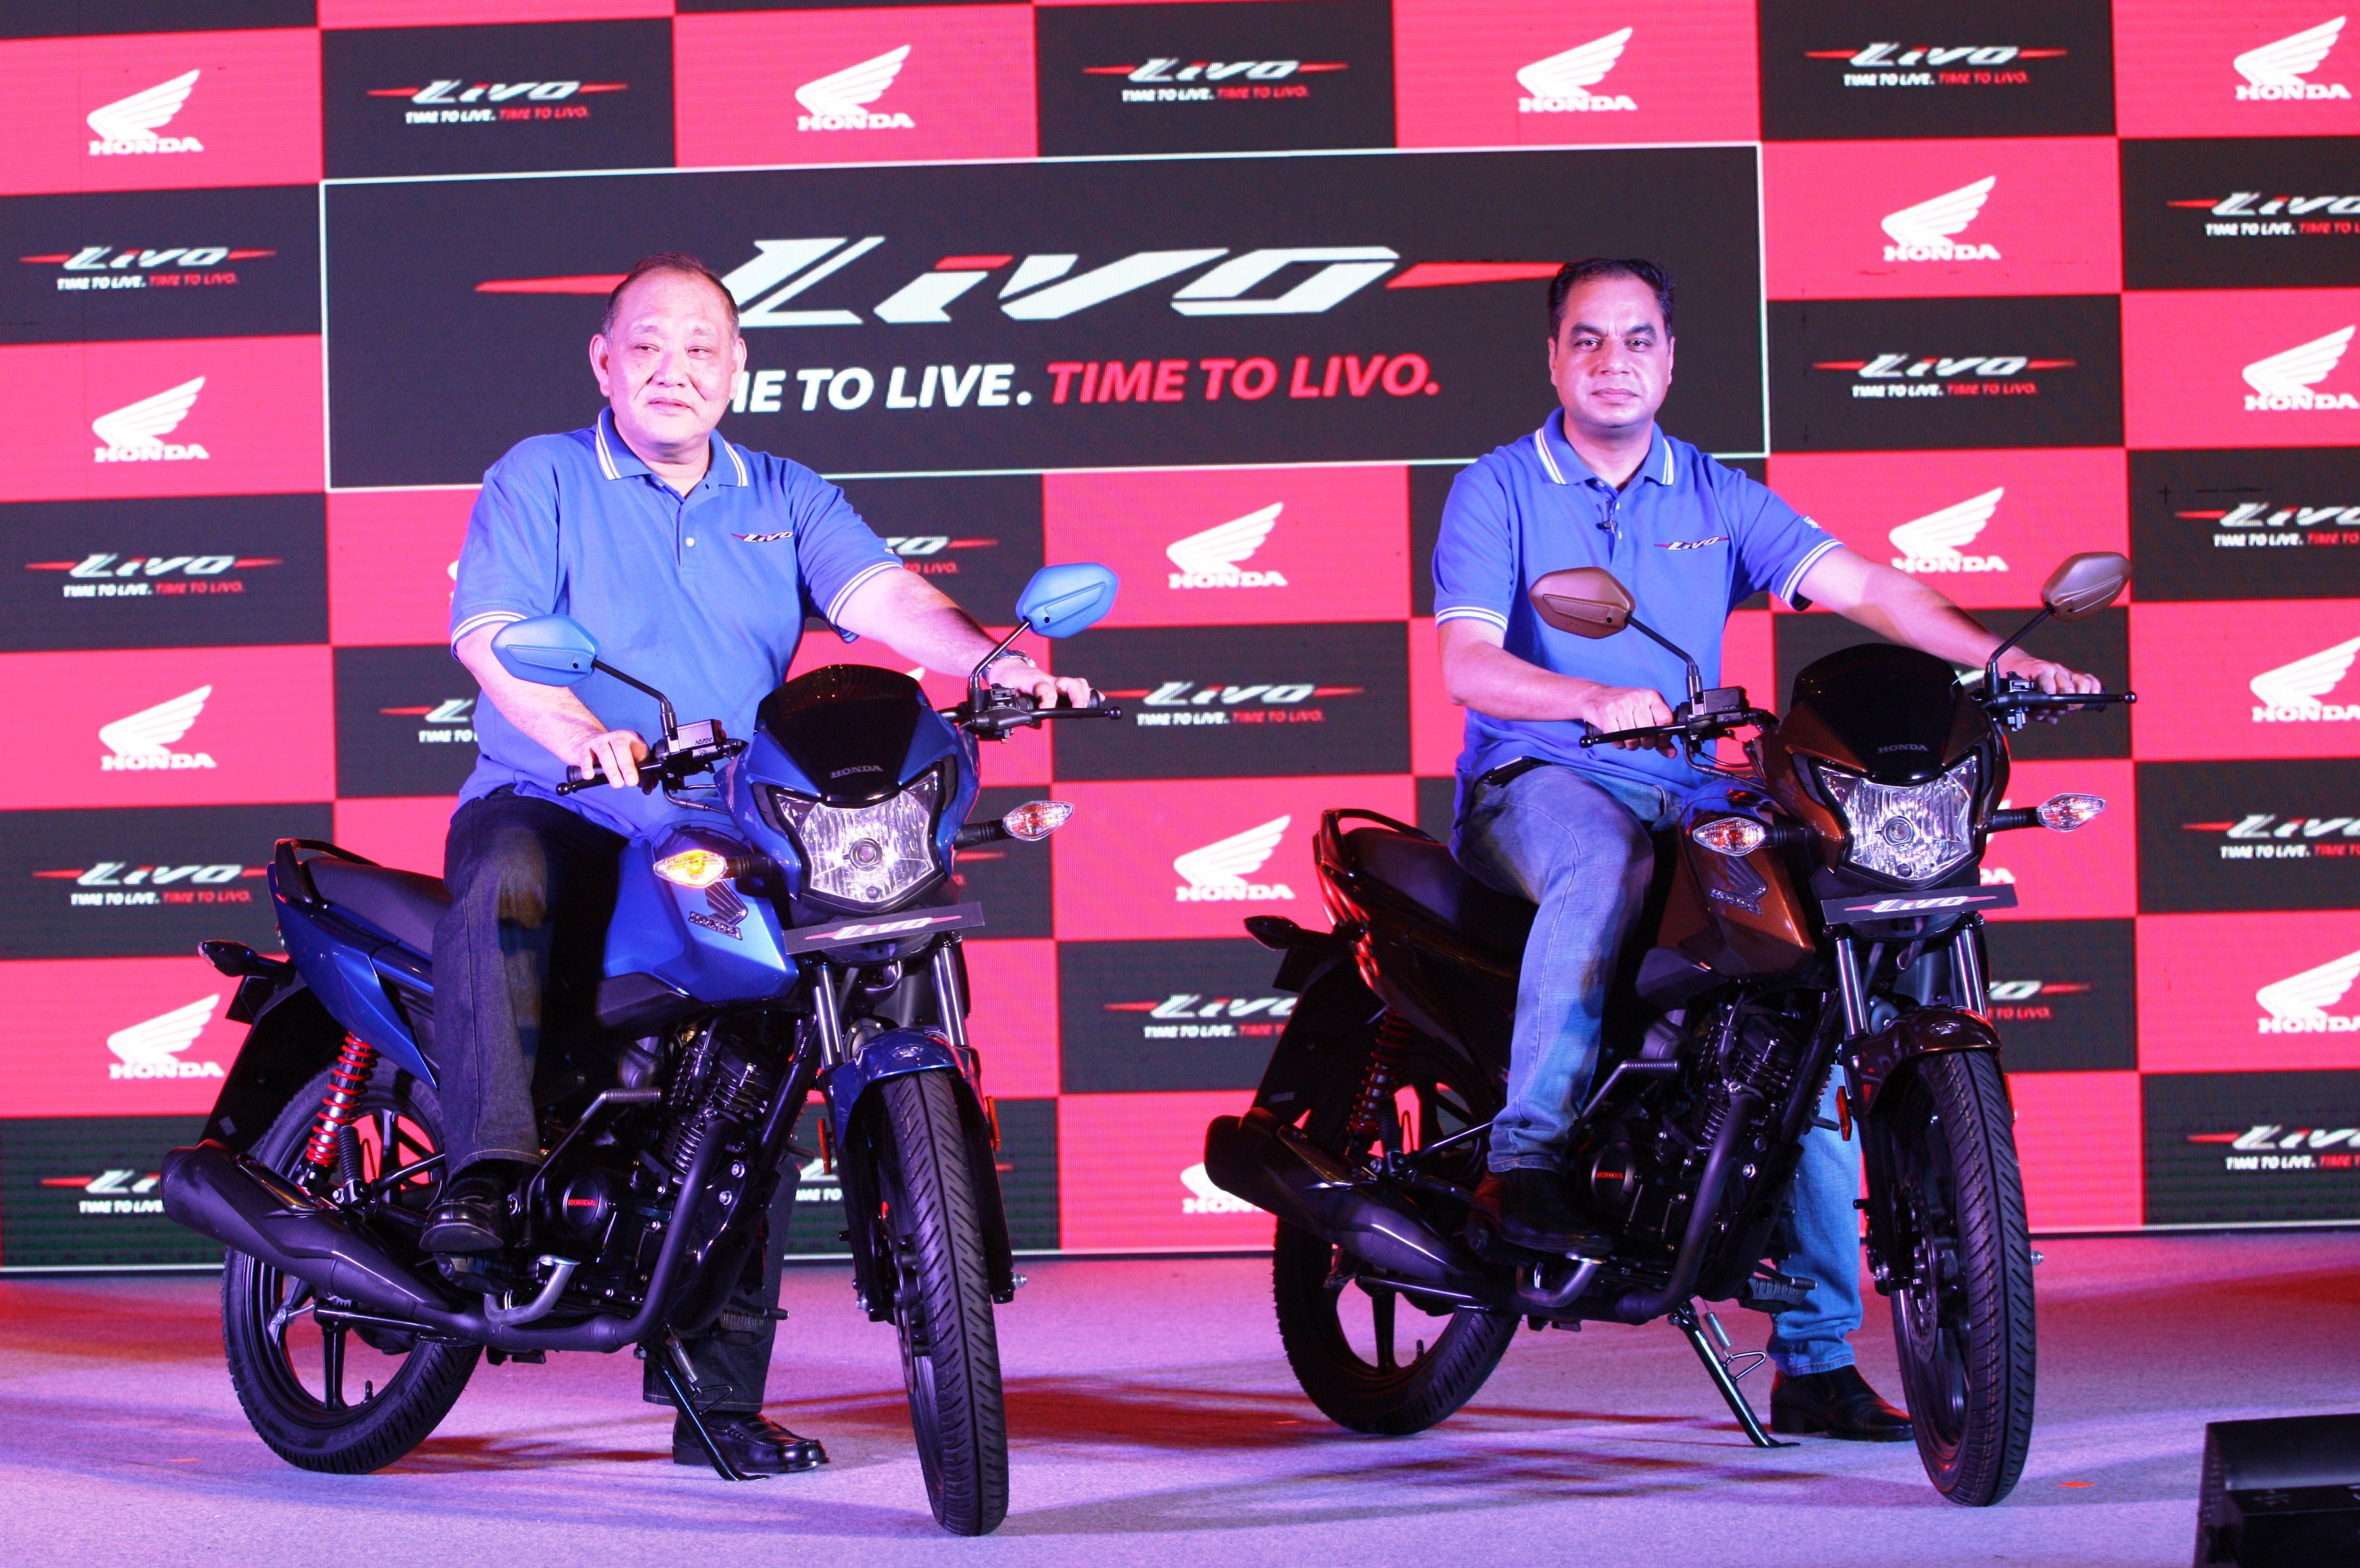 Honda Livo – style comes to the entry level, launch price Rs 52,989